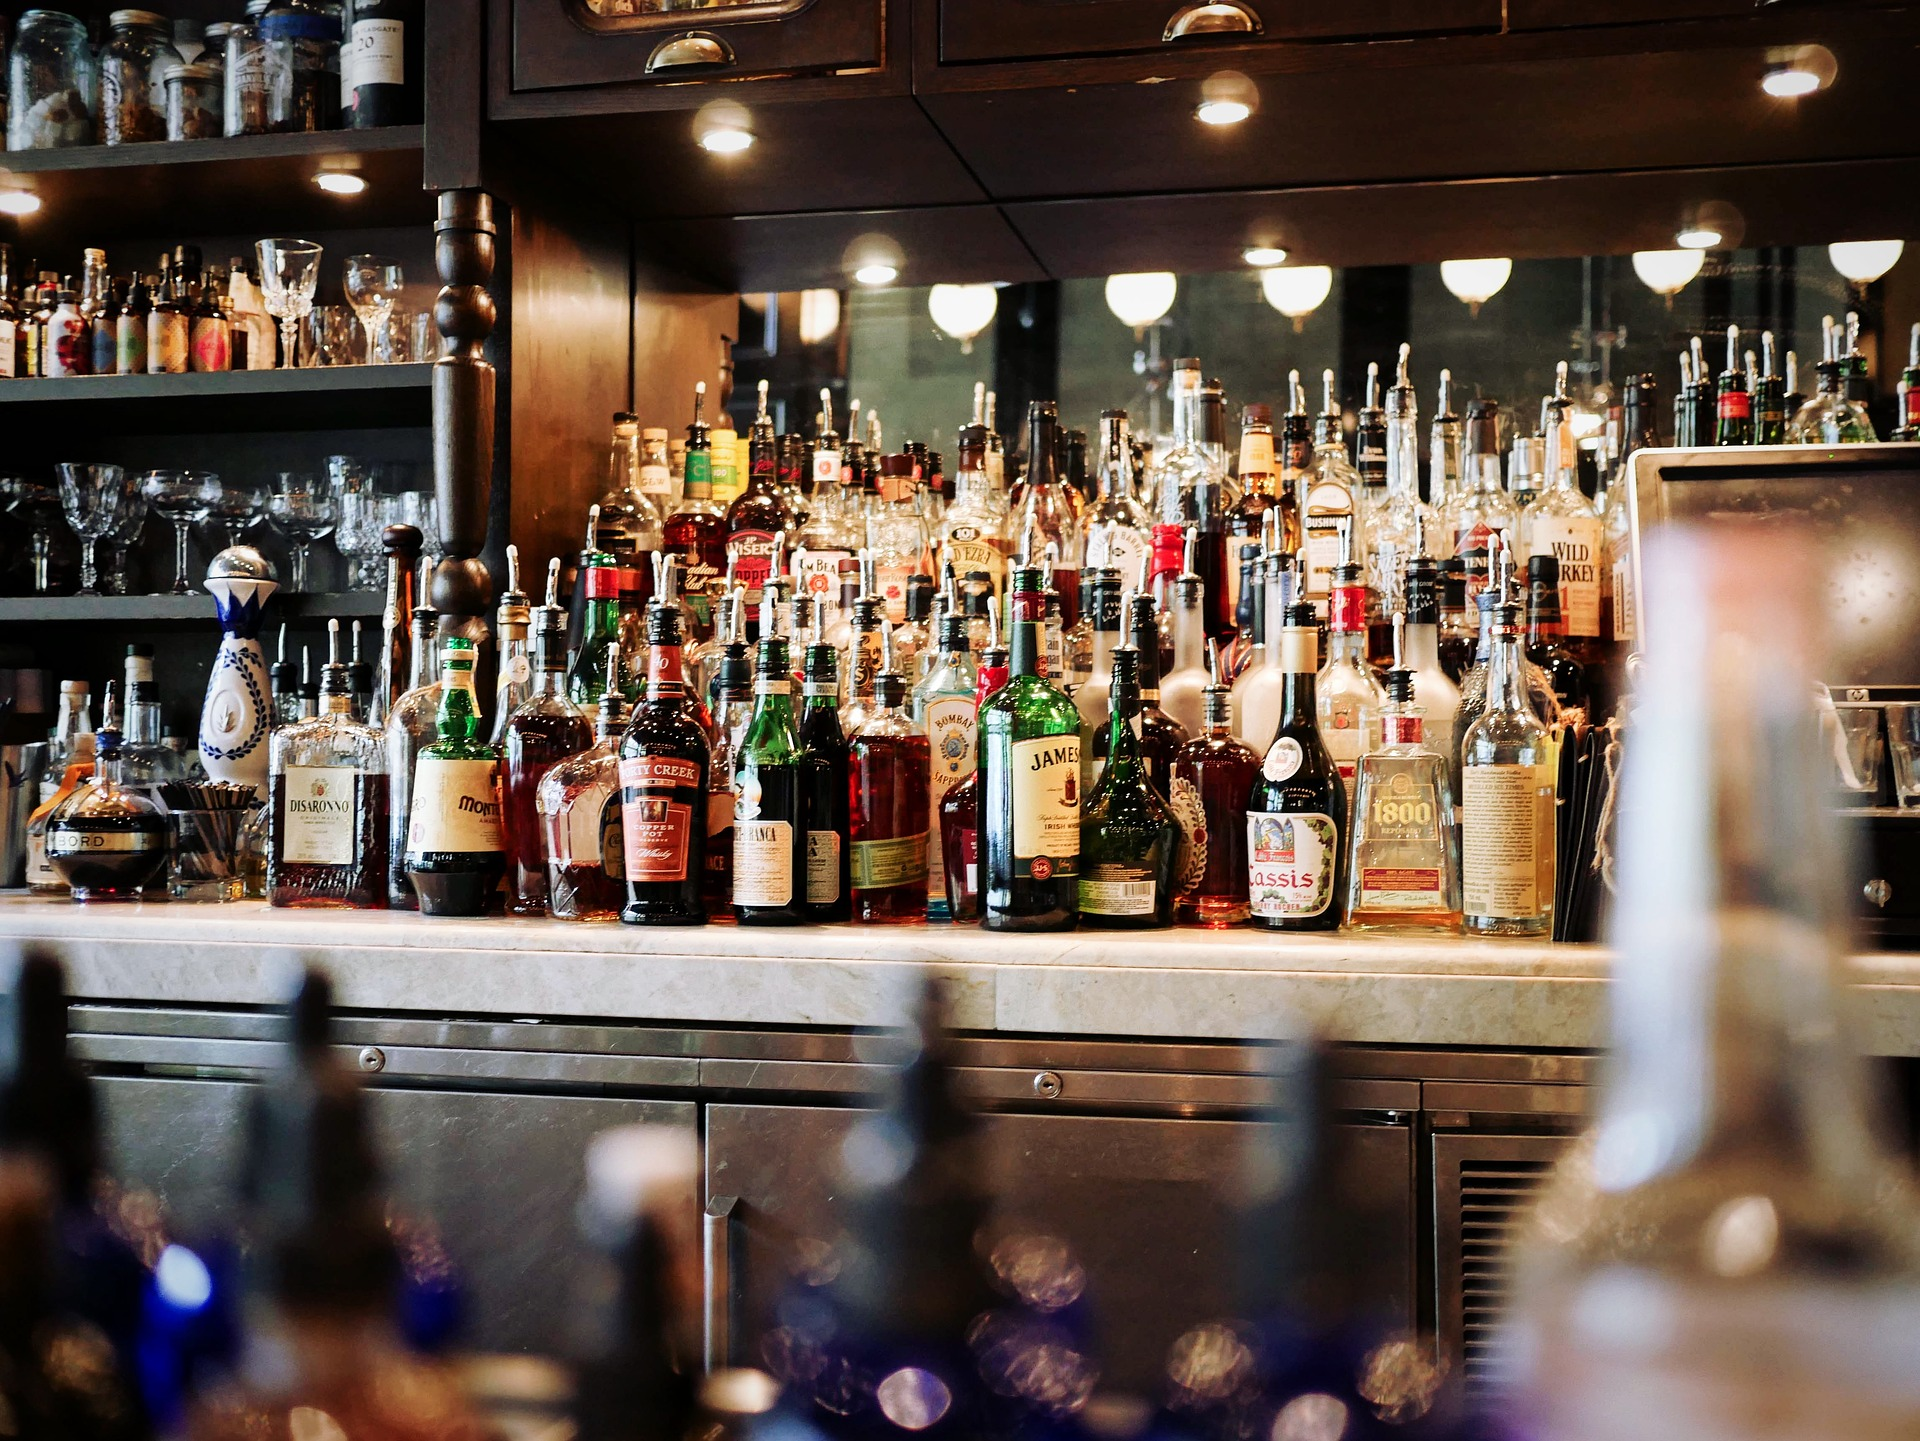 bottles of alcohol liquor link between customer service and booze